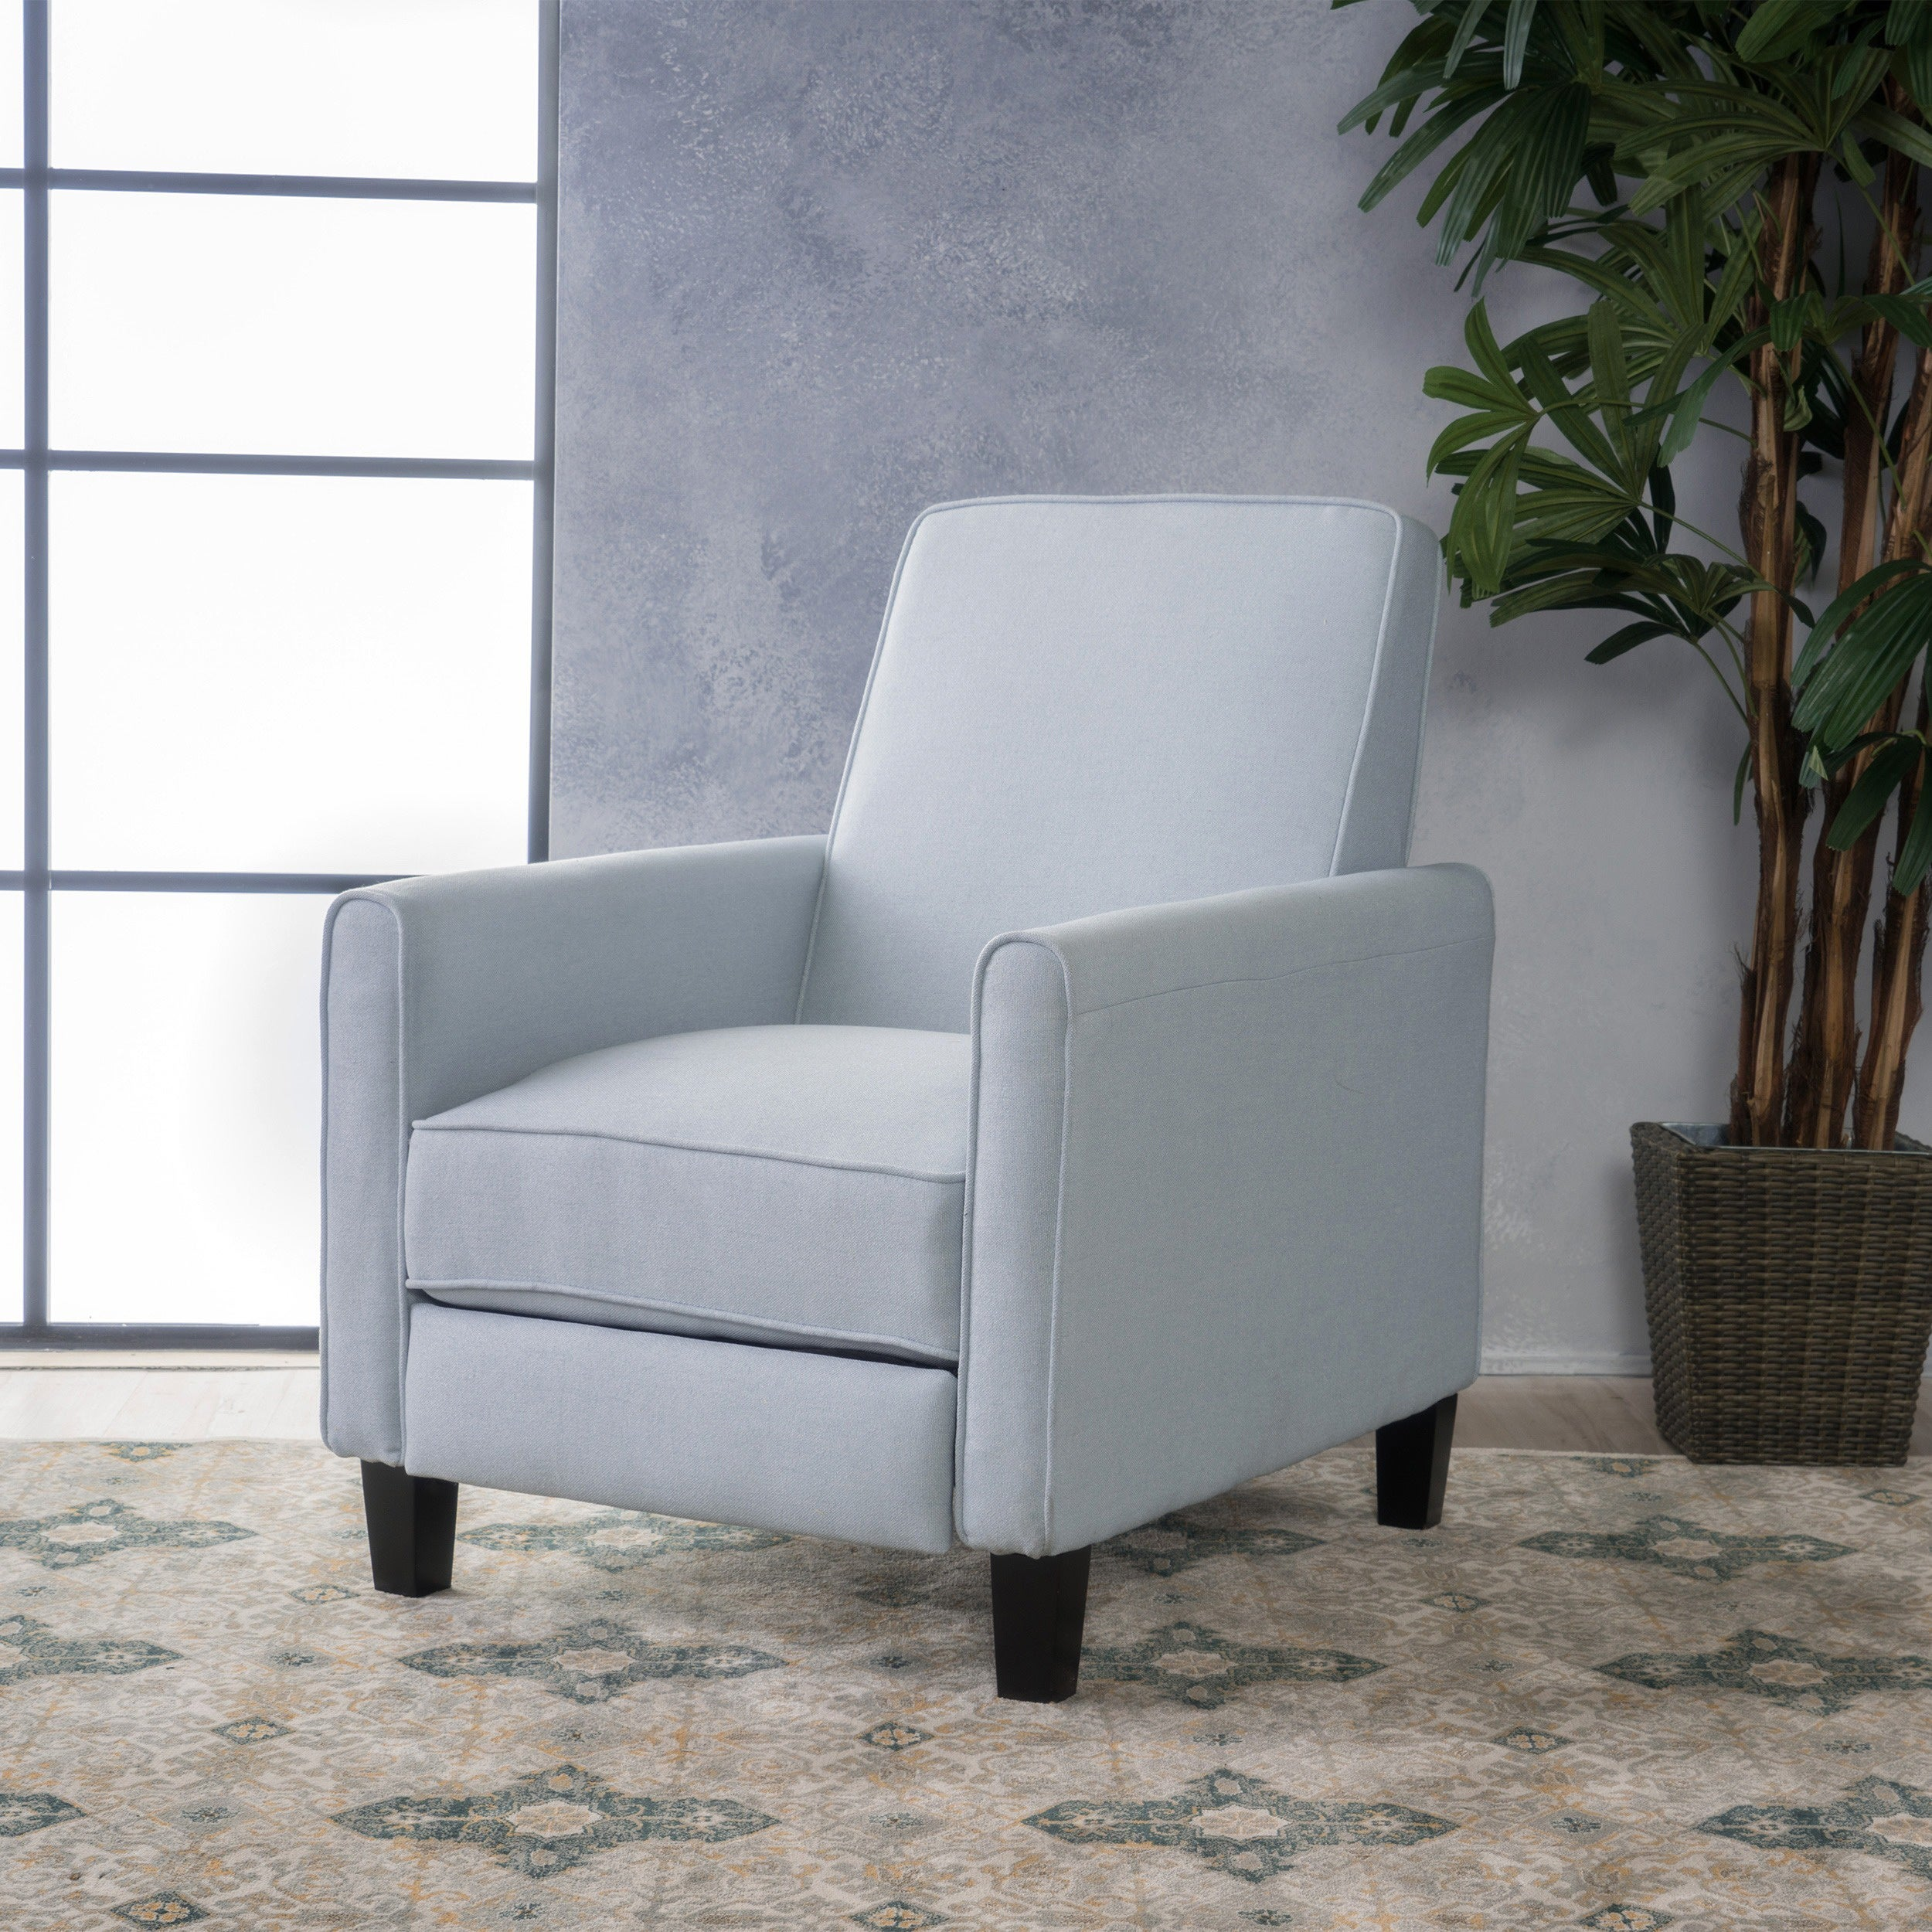 Darvis Fabric Recliner Club Chair by Christopher Knight Home